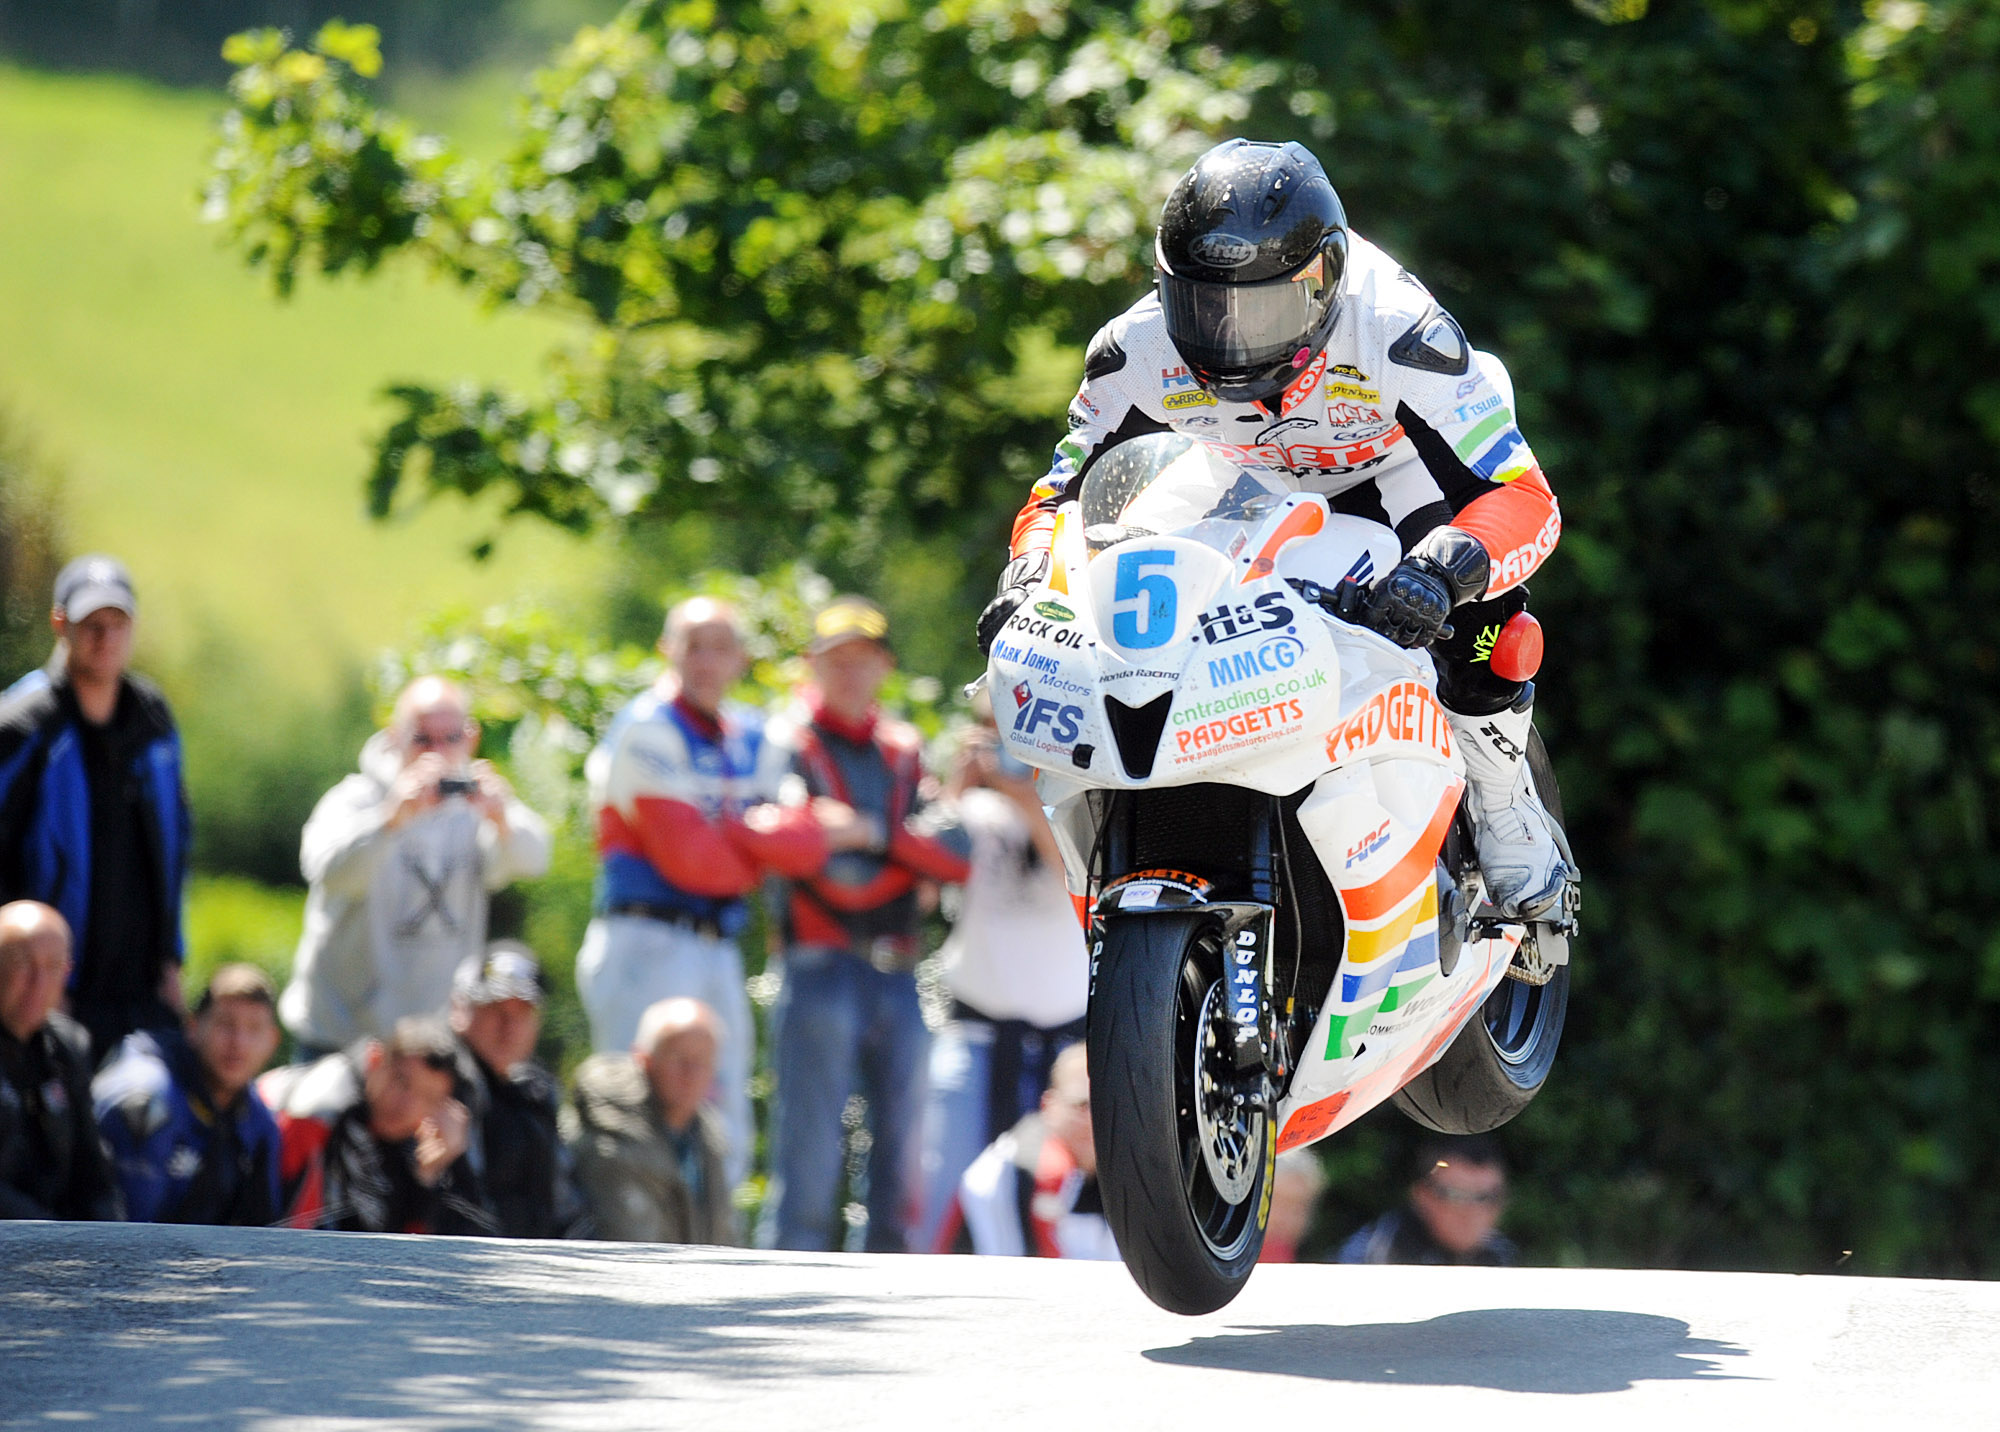 061011-iomtt-supersport1